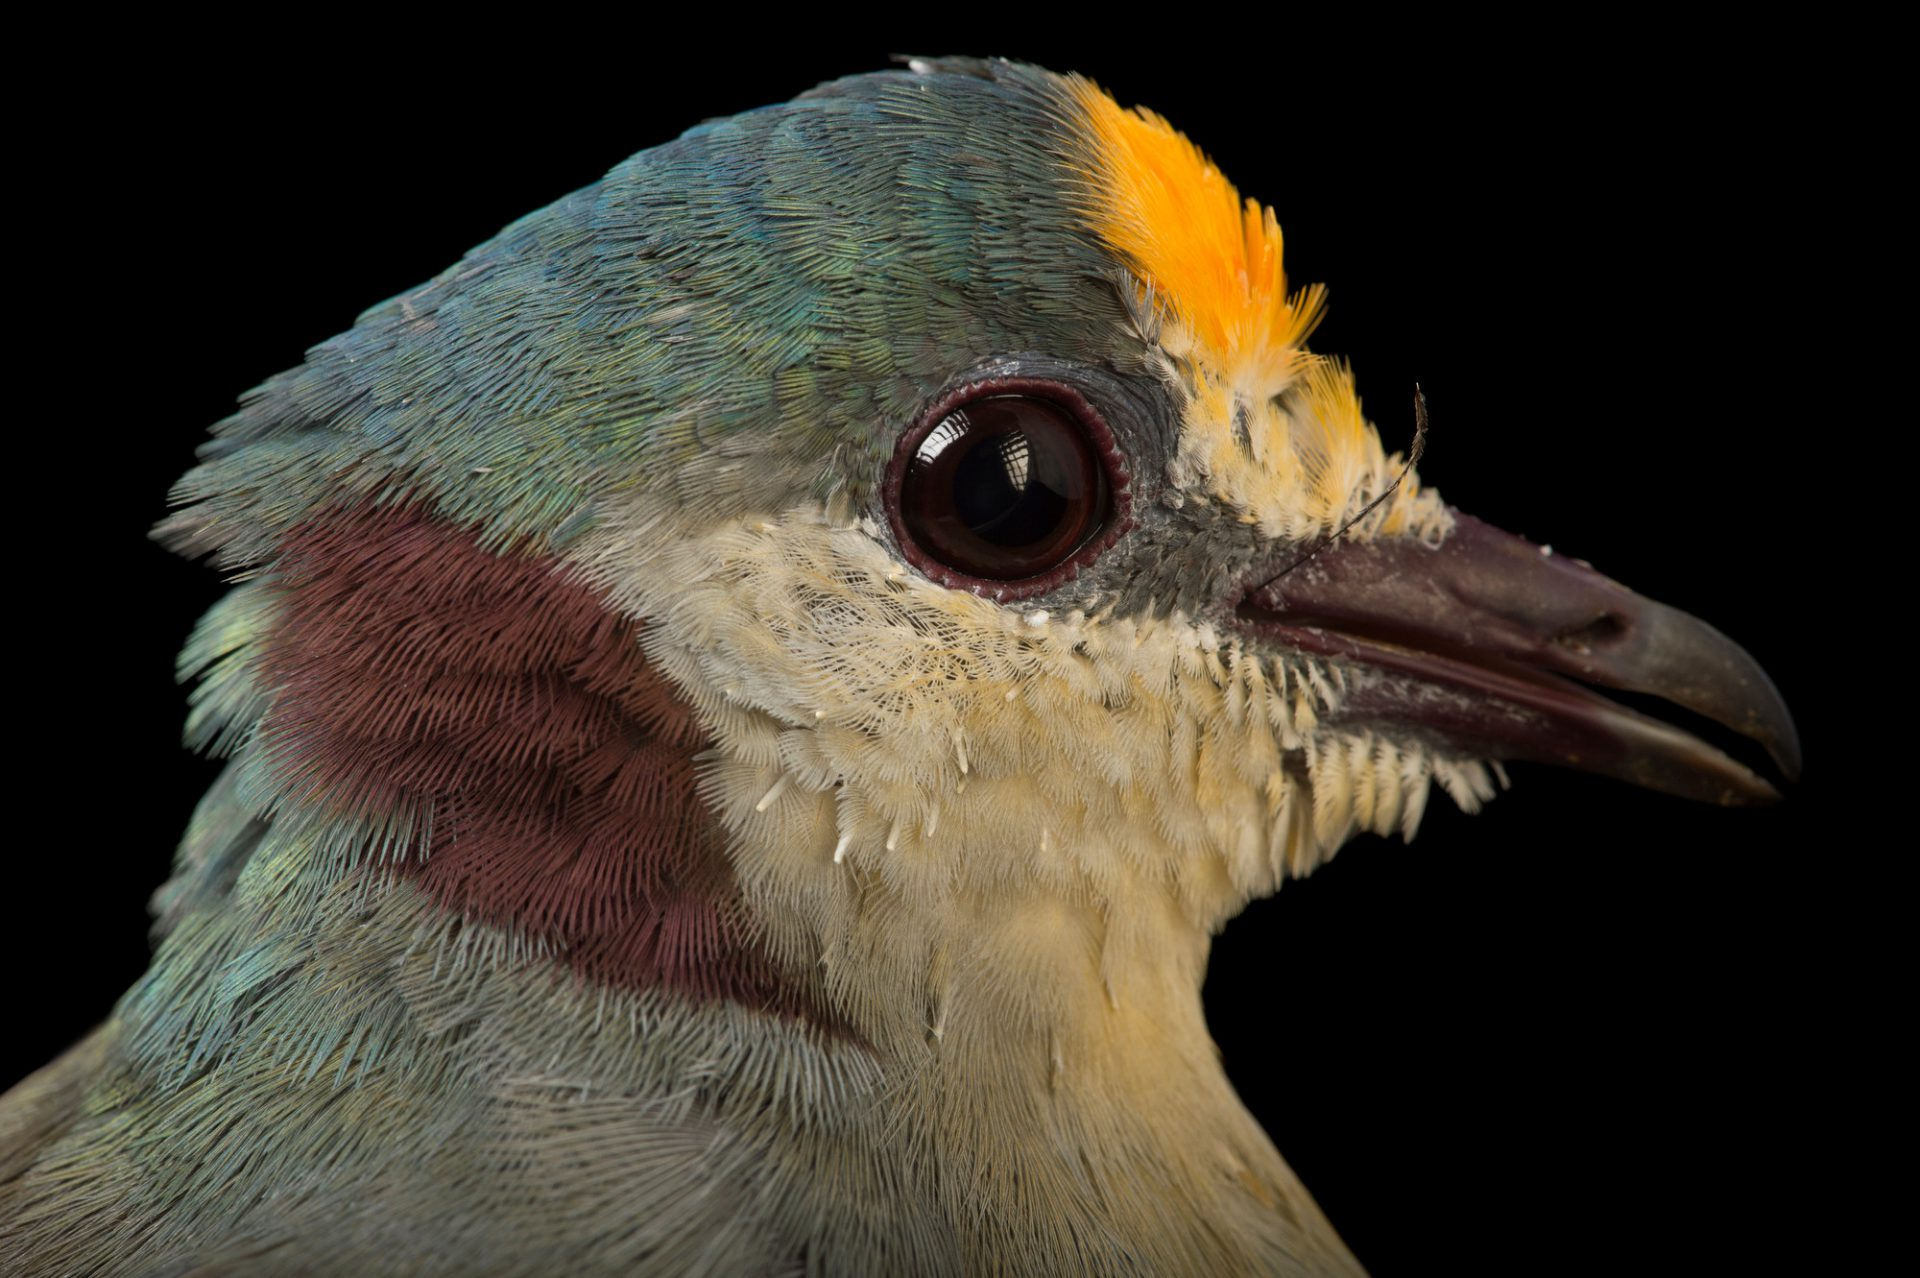 Picture of a Yellow-breasted Ground-dove (Gallicolumba tristigmata) at the Houston Zoo.